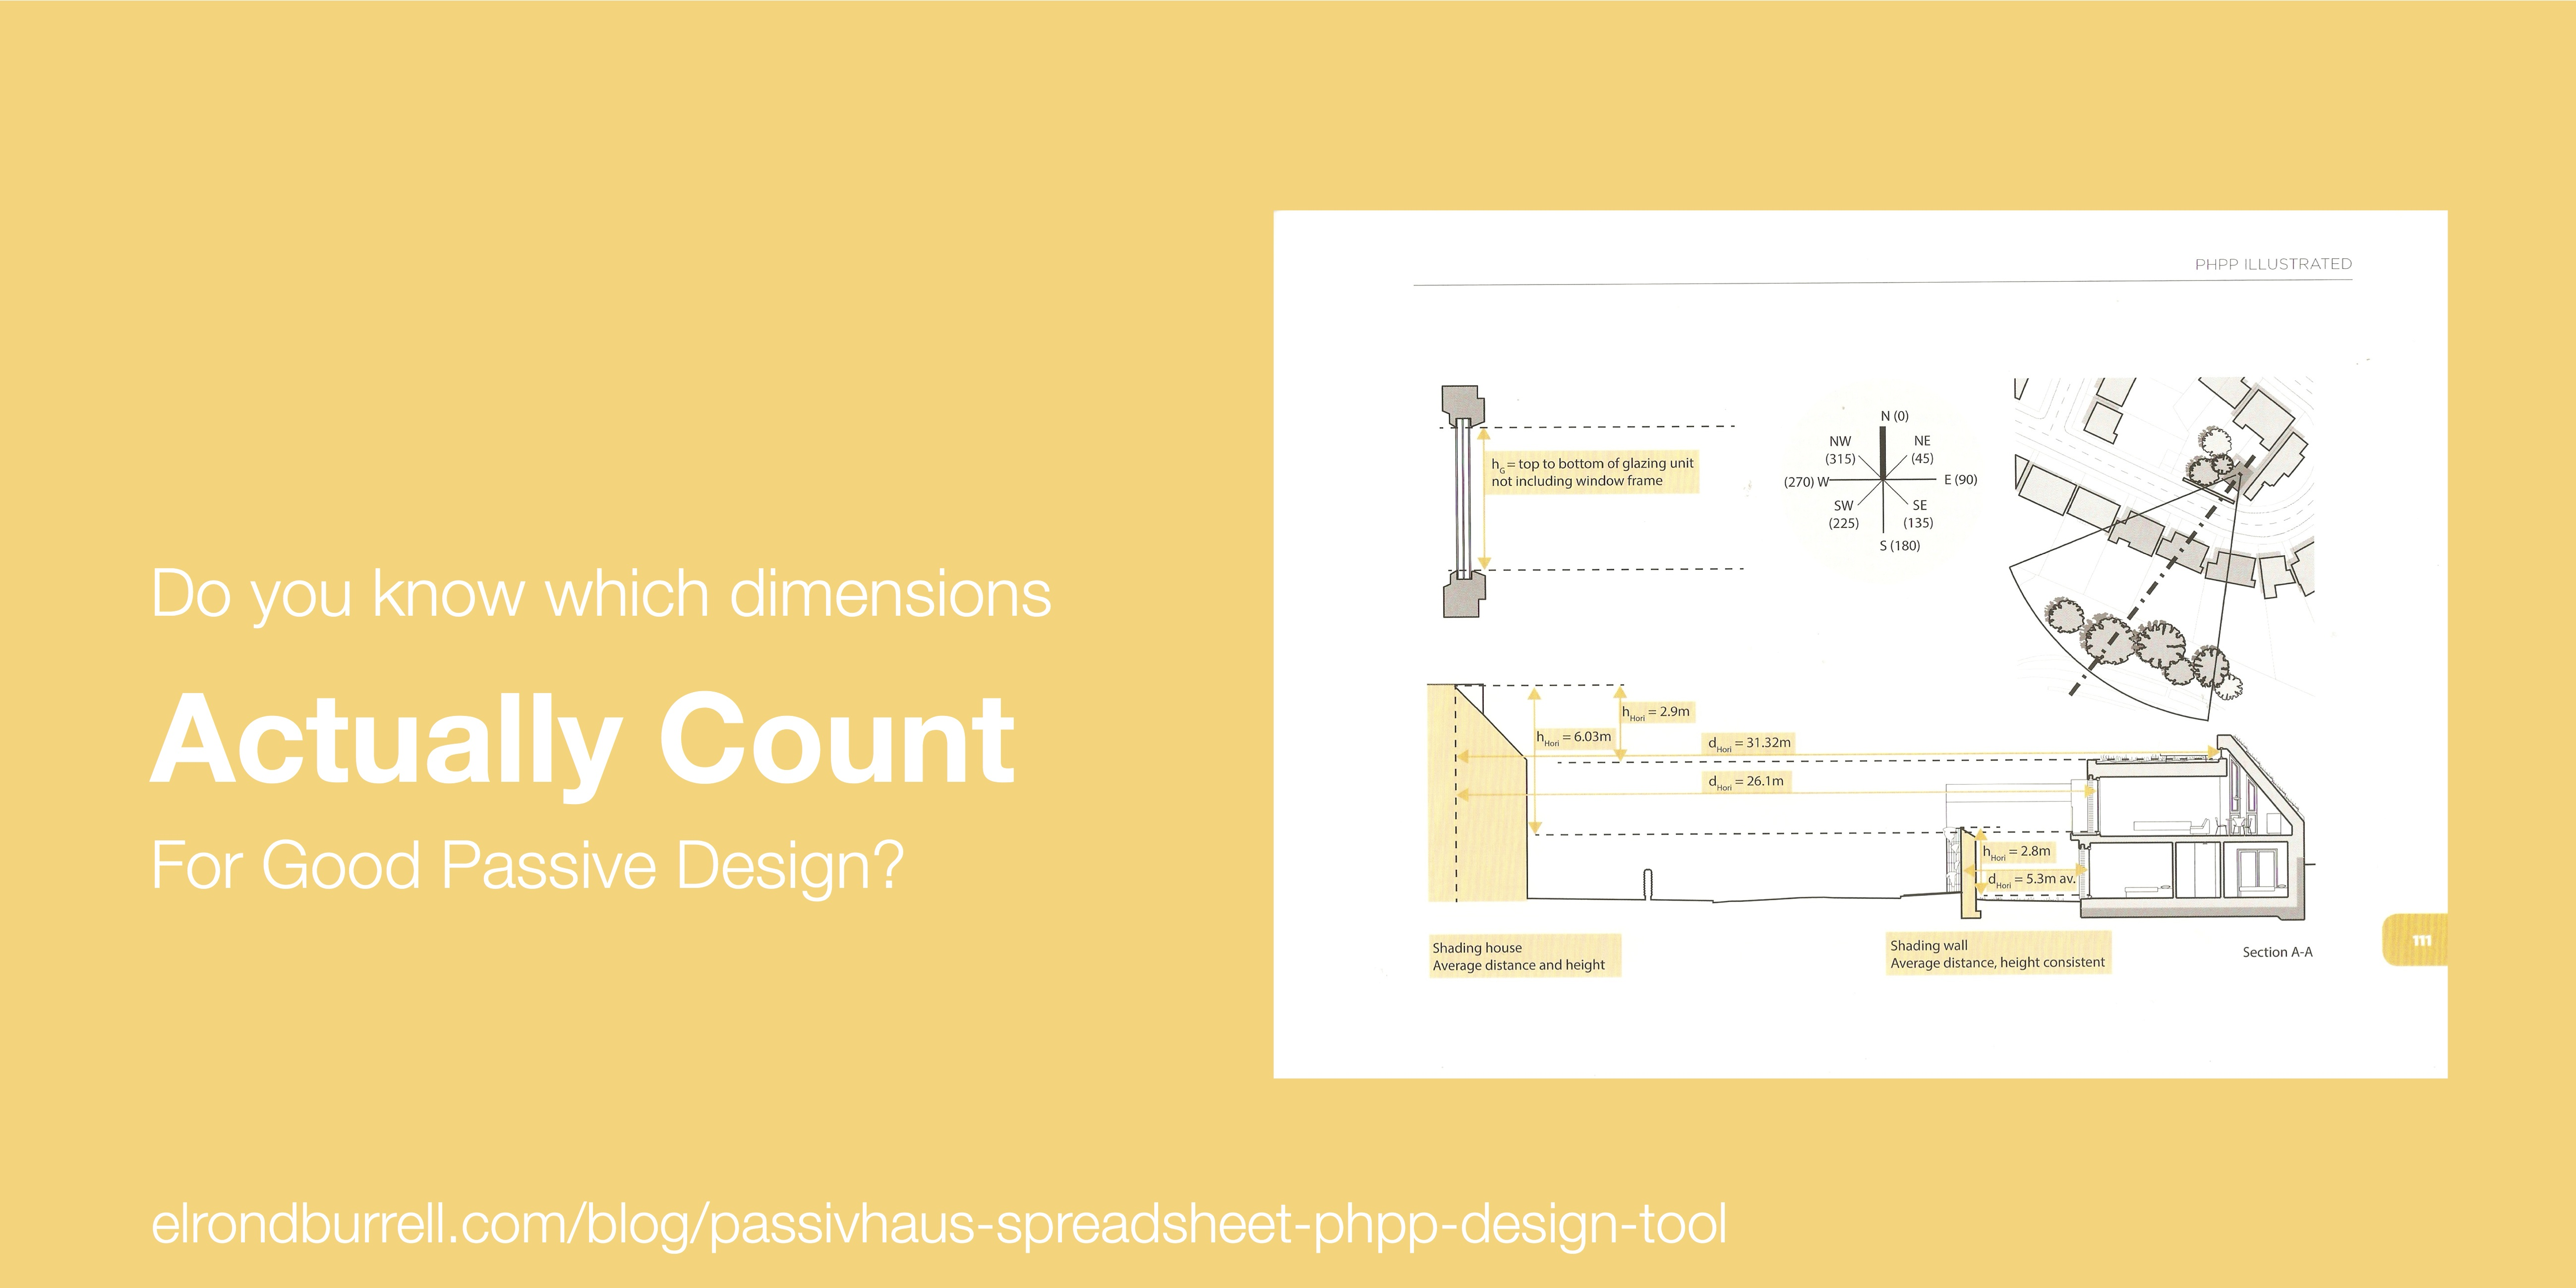 How To Use The Passivhaus Spreadsheet Phpp As A Design Tool Residential Electrical Wiring Diagrams Basic Energy 015 Shade Dimensions